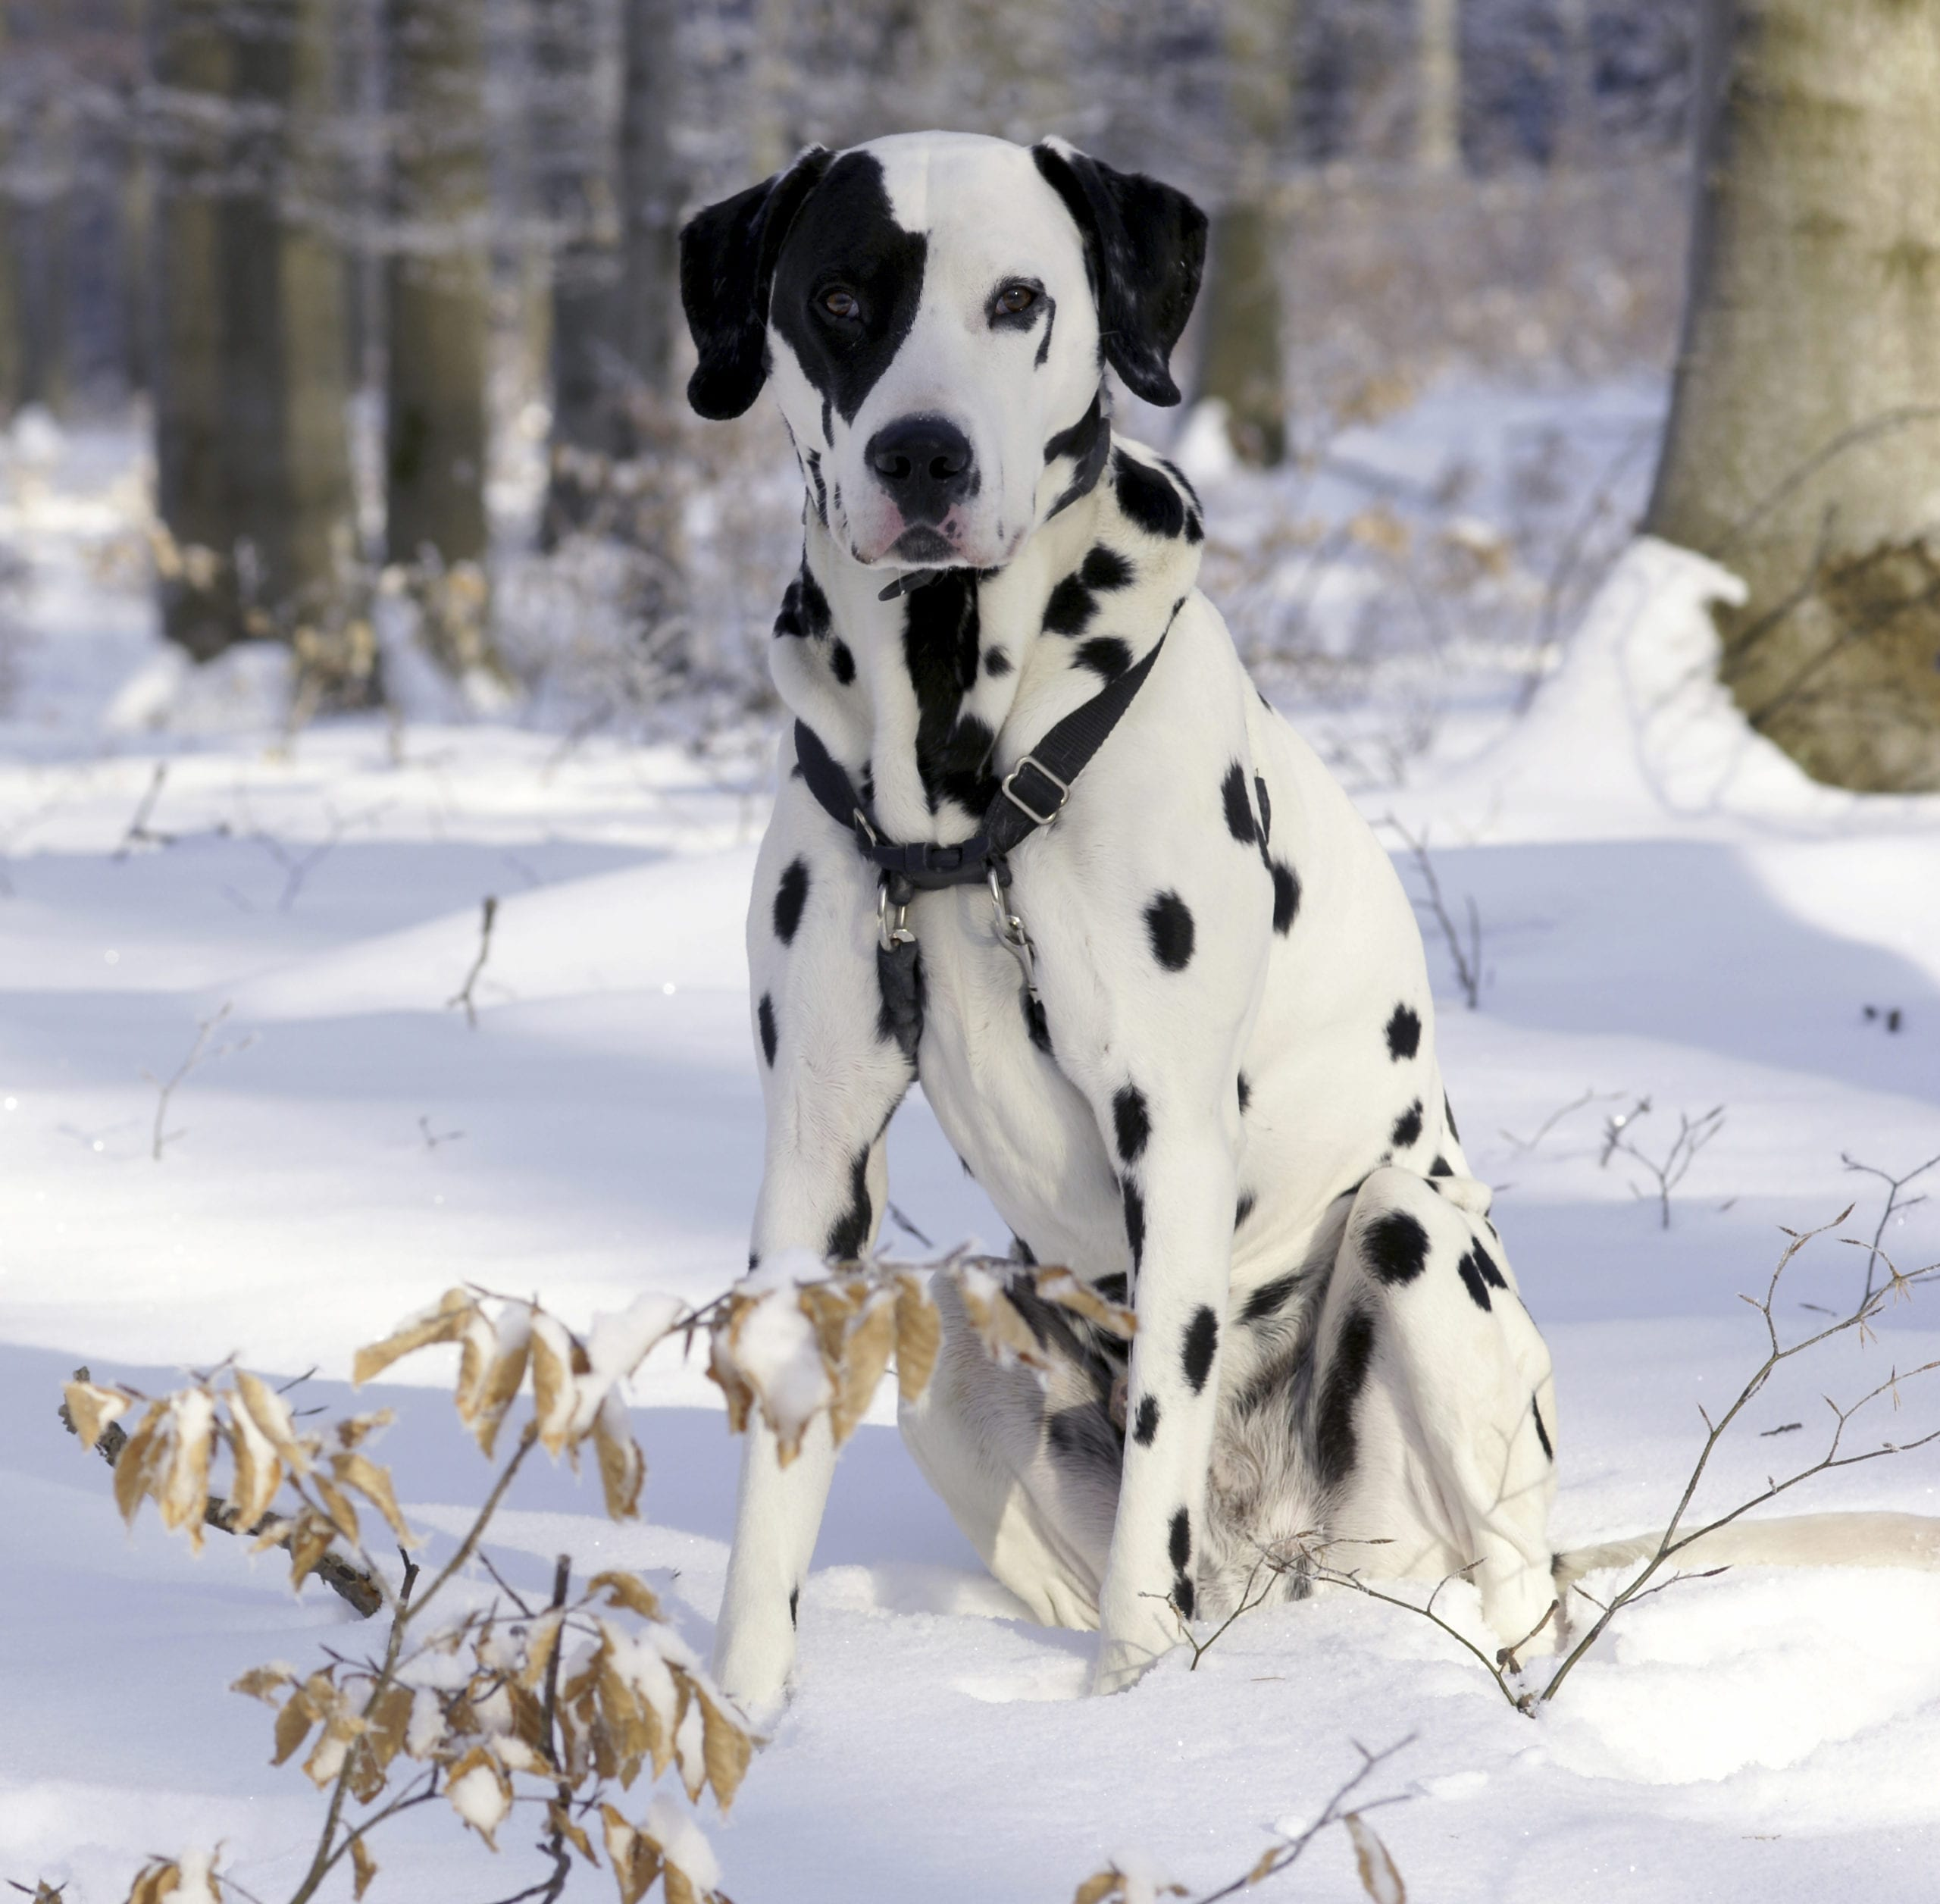 Dalmatian in the snow